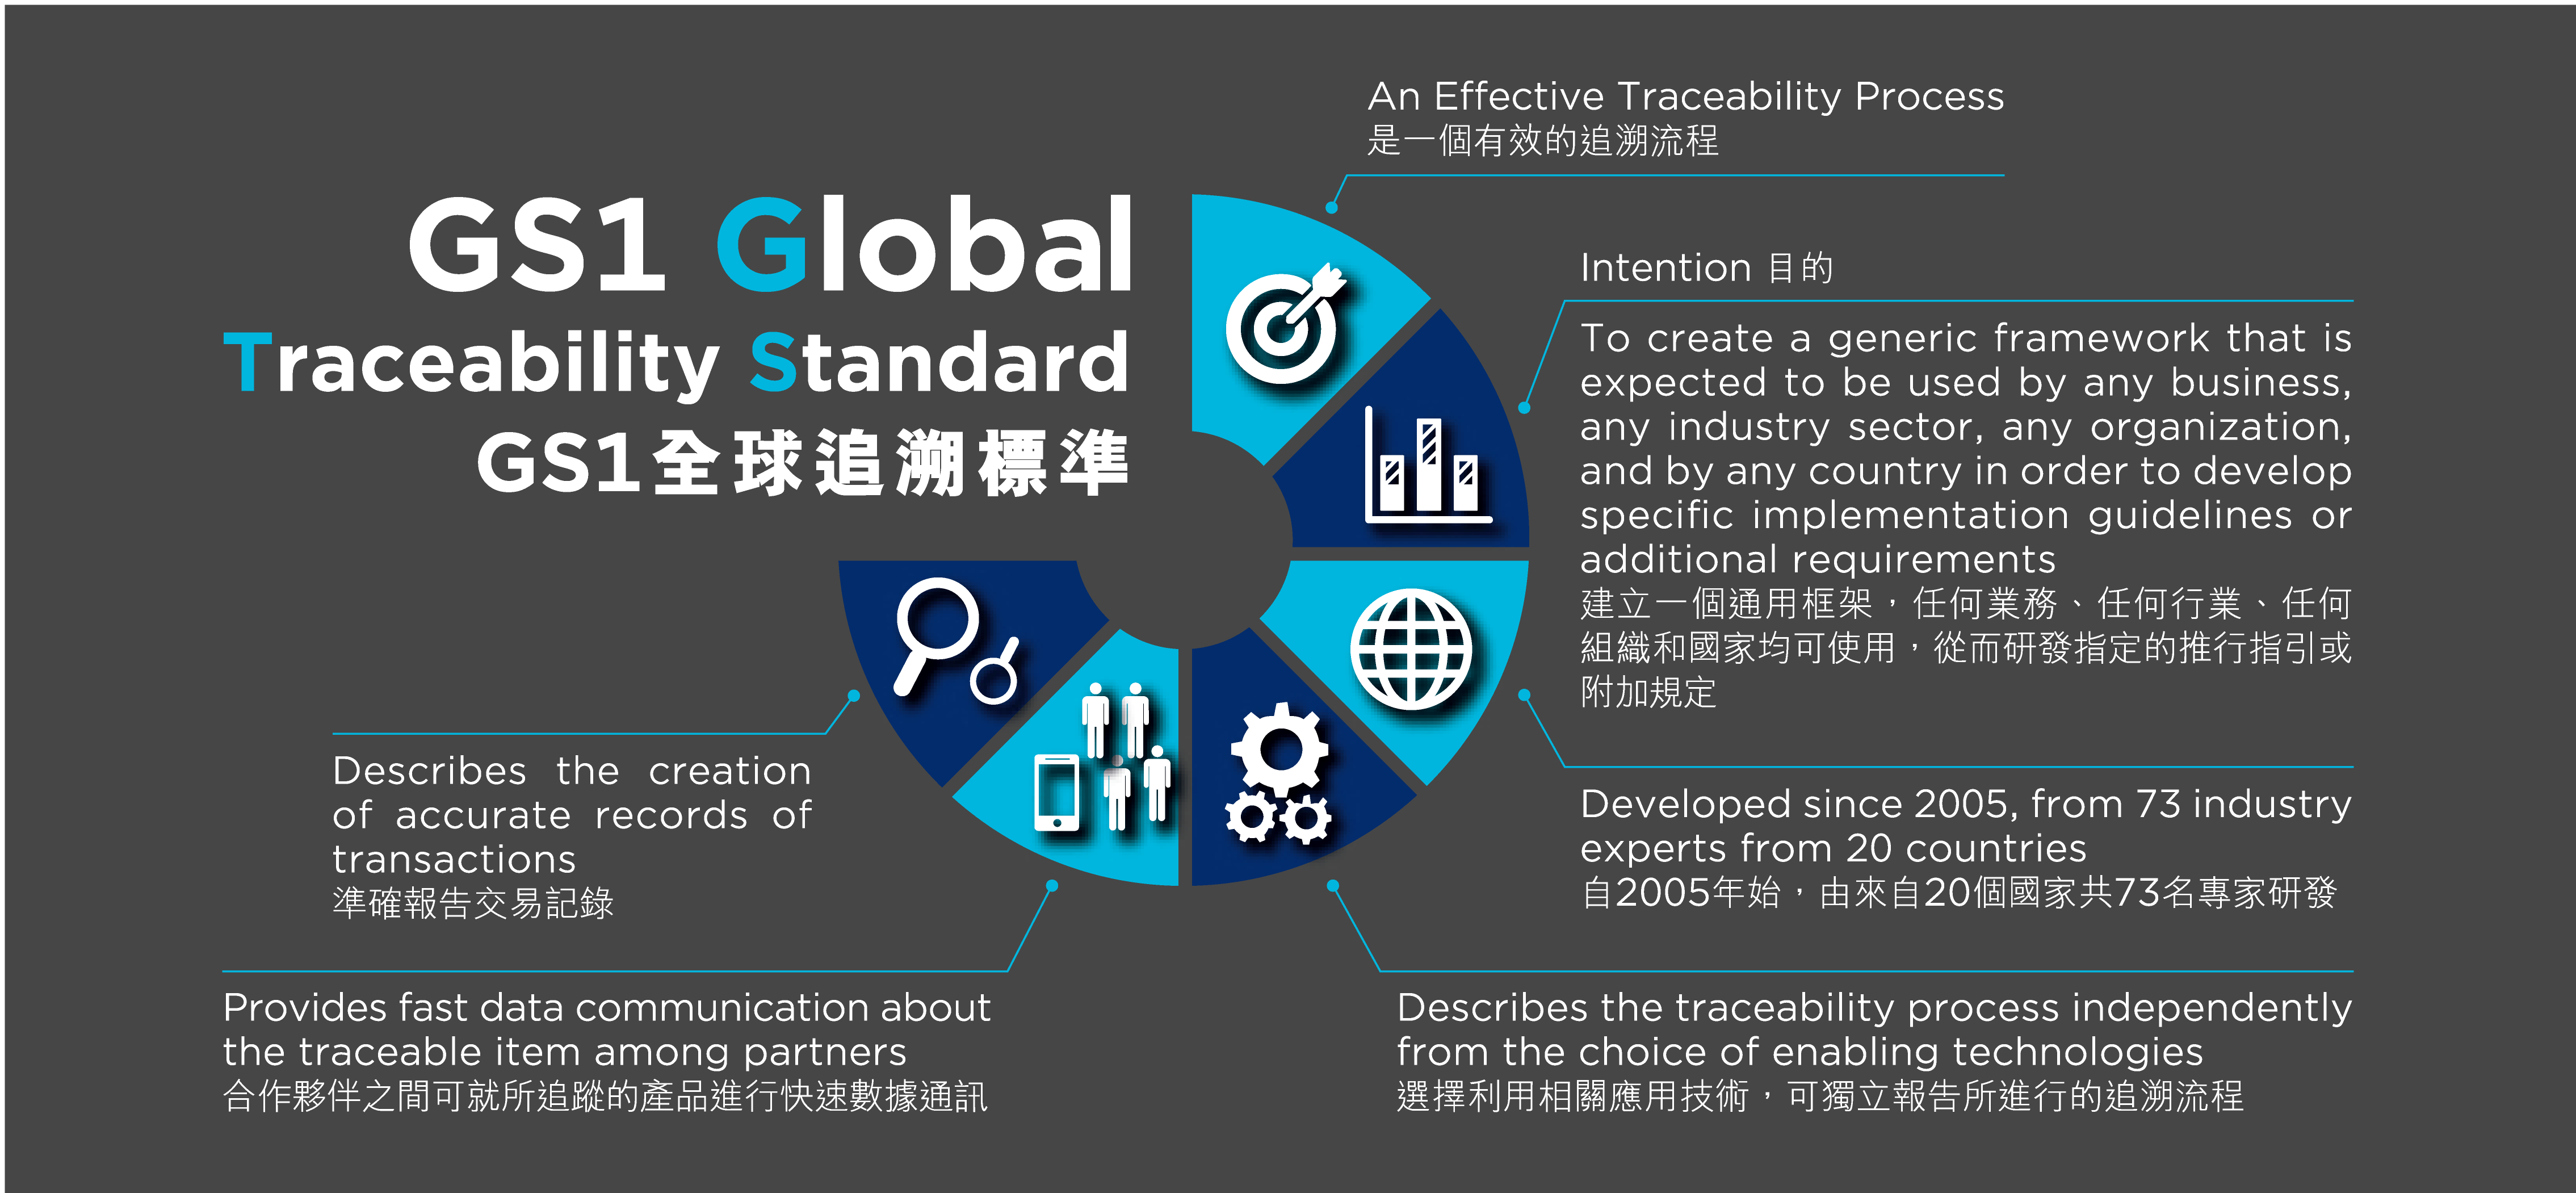 GS1 Global Traceability Standard